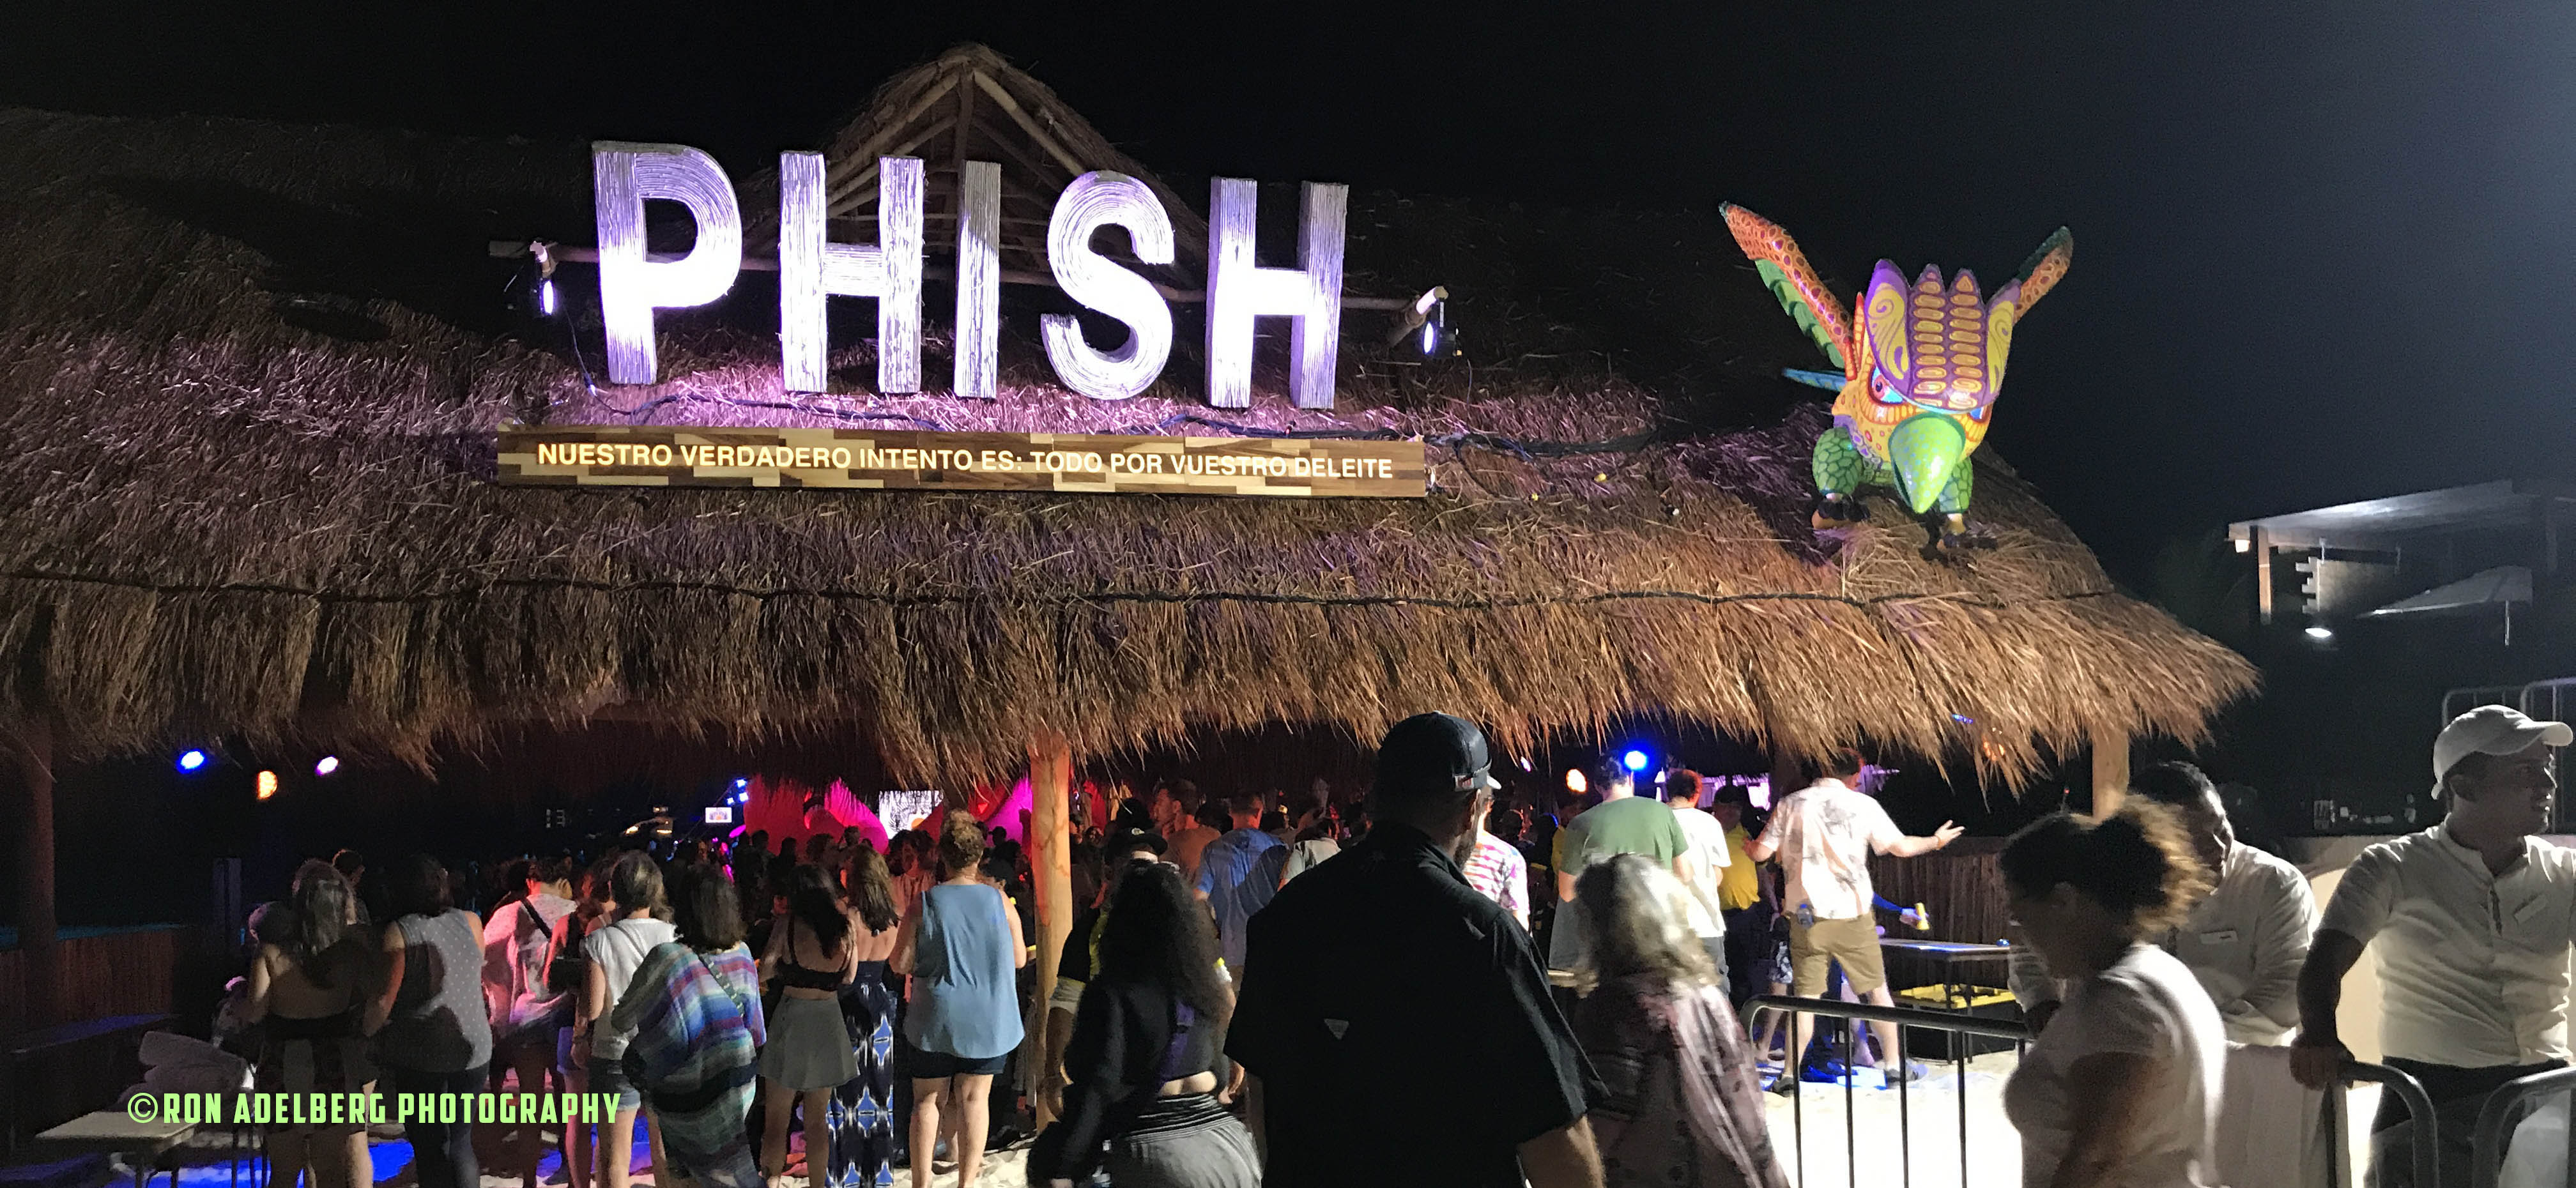 """Waves"" pro shot video from Phish's 2/22/2020 show at Moon Palace Resort, Riviera Maya, MX."